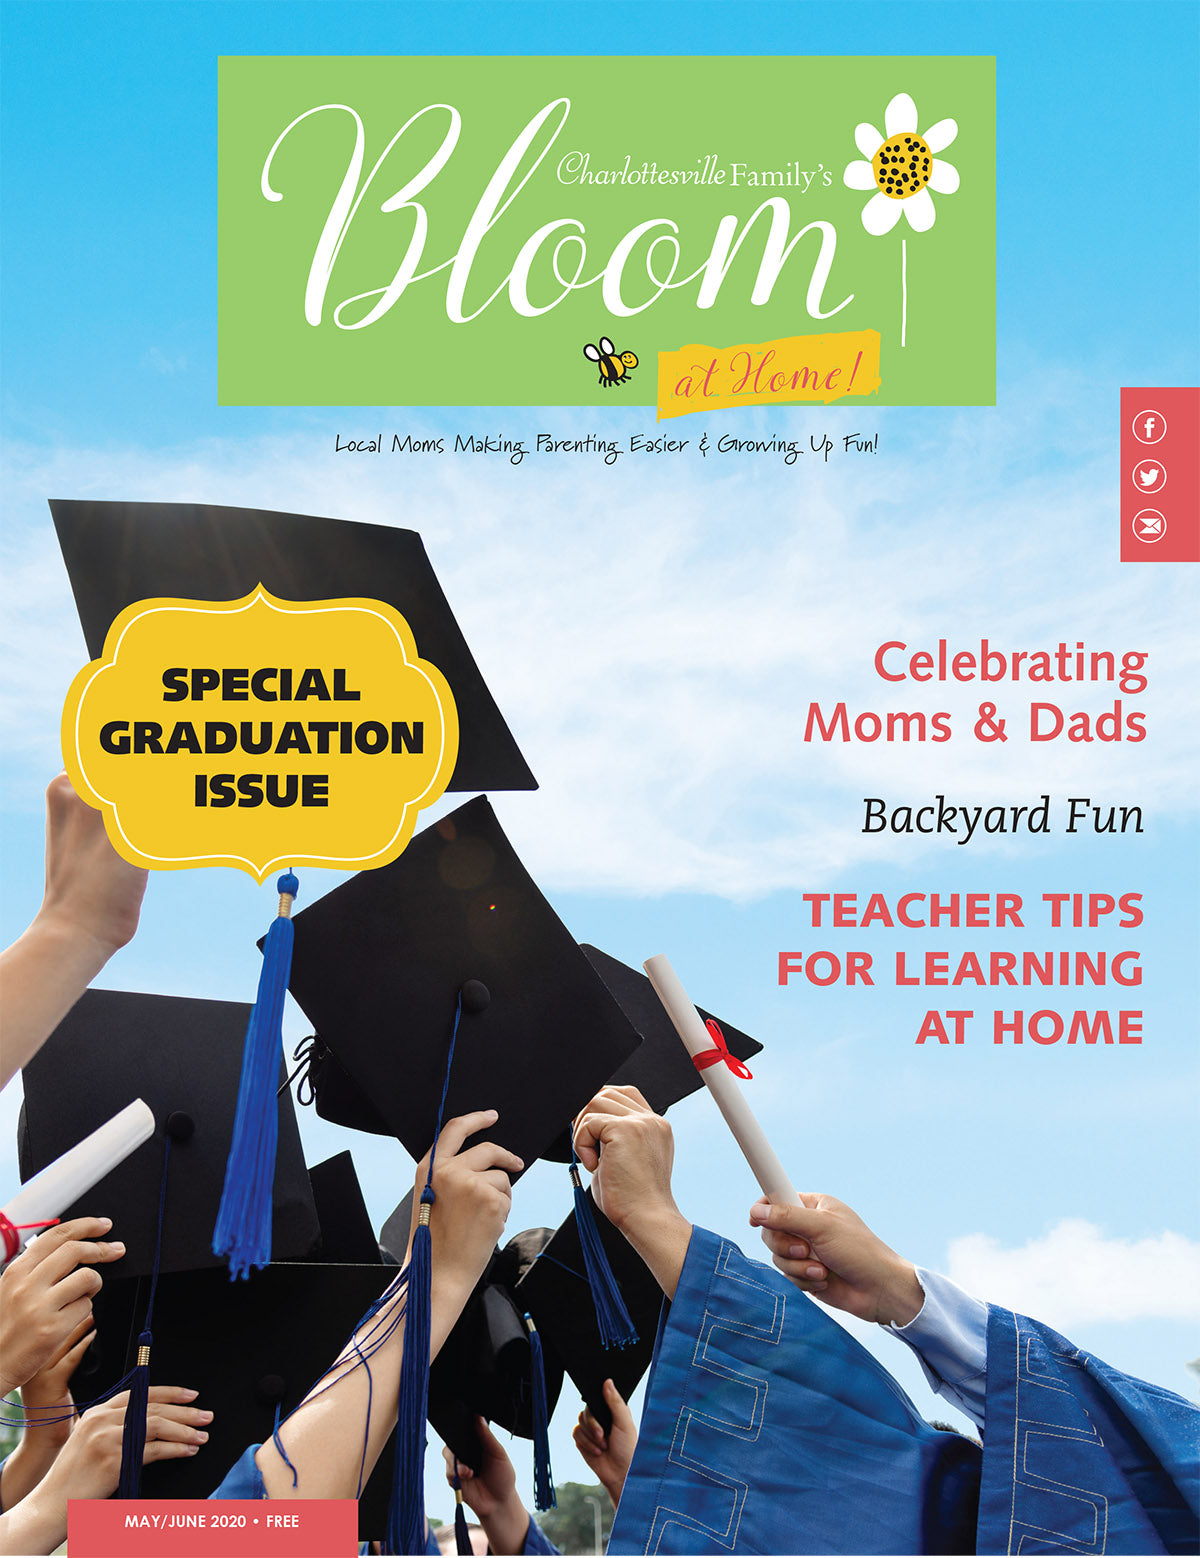 Charlottesville Family Bloom May/June - 2020 Single Print Issue